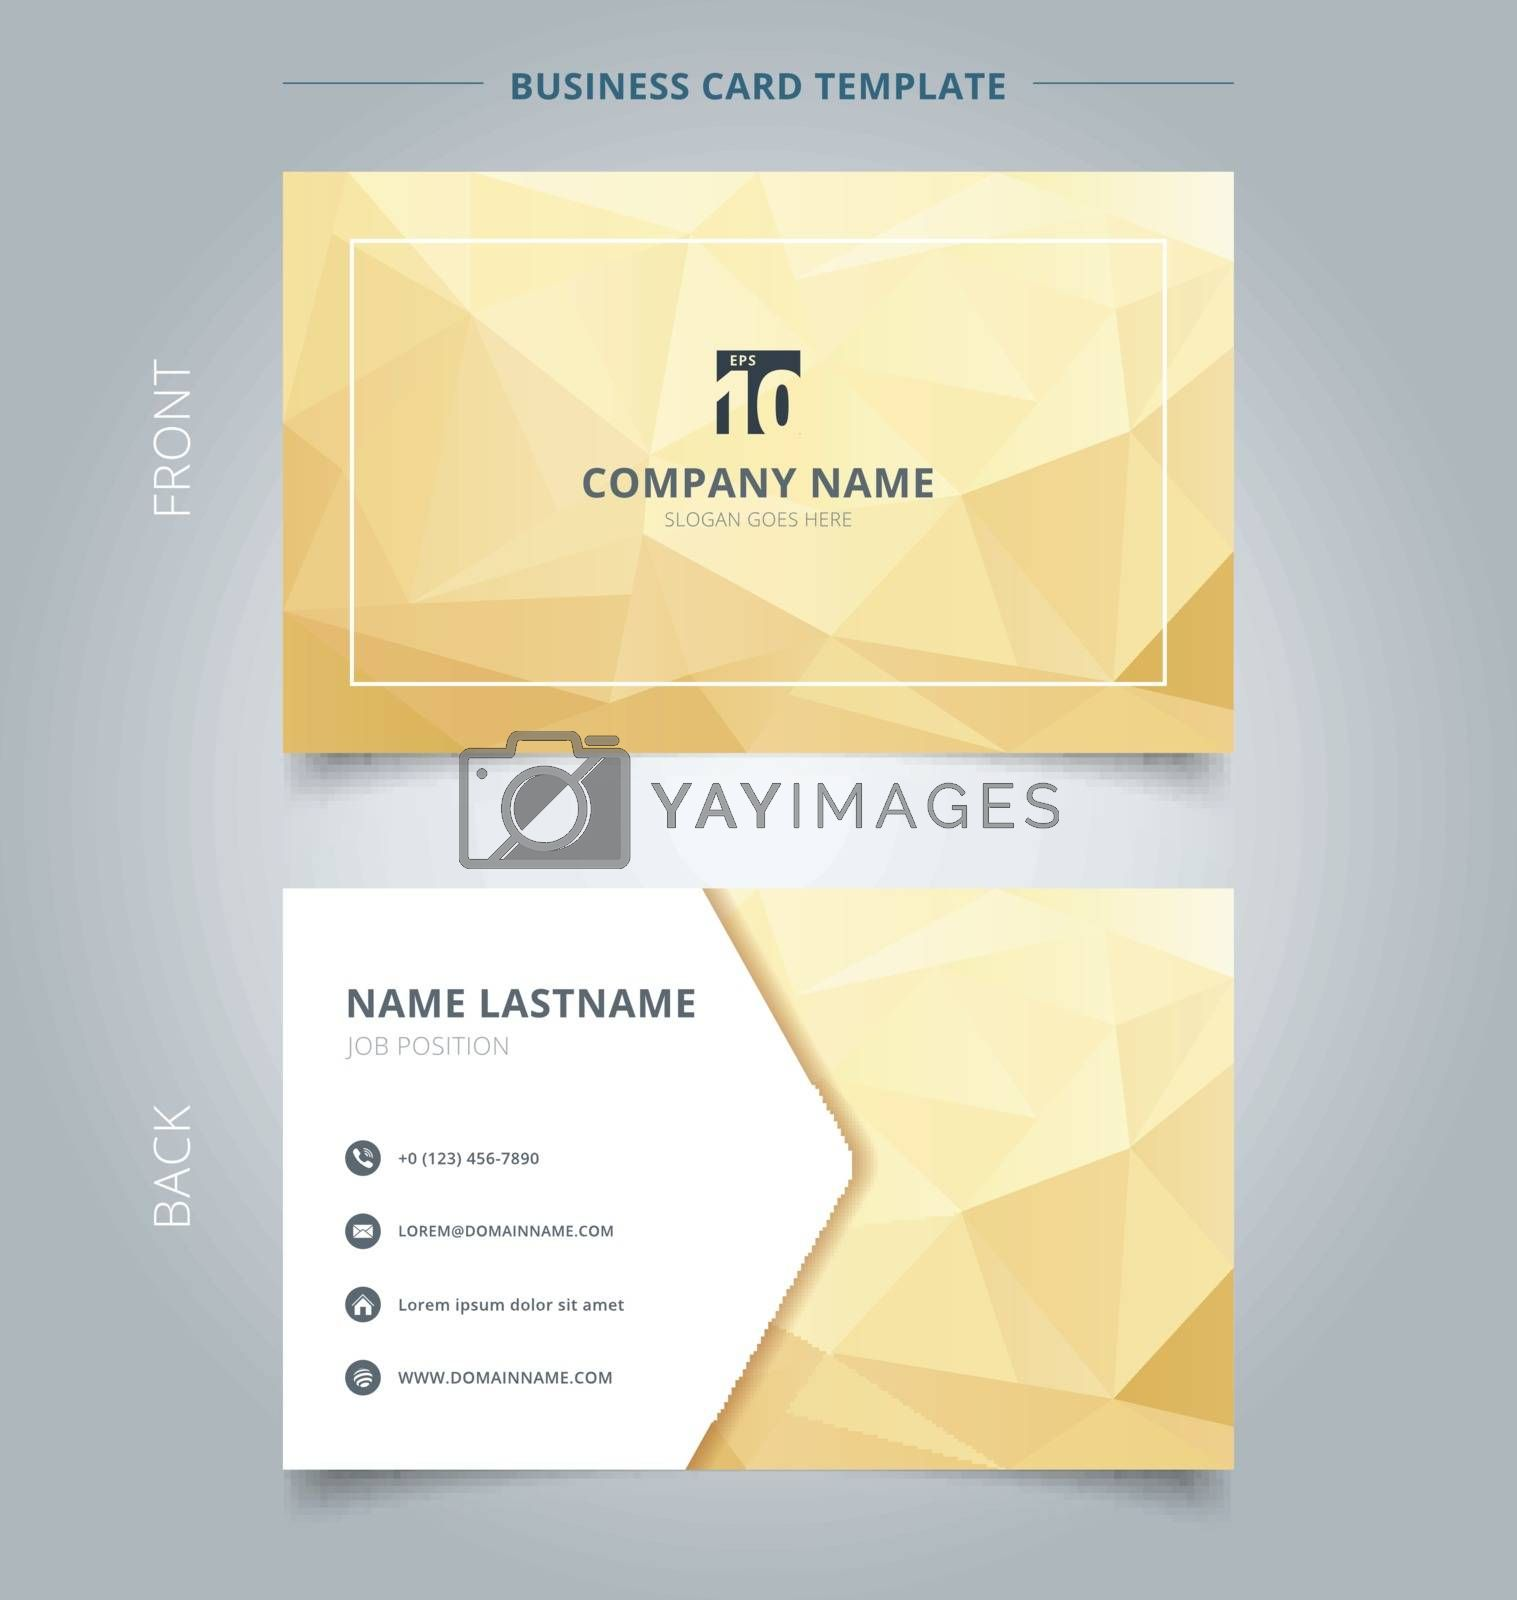 Creative business card and name card template abstract yellow and gold geometric background with lighting. Concept and commercial design. vector graphic illustration